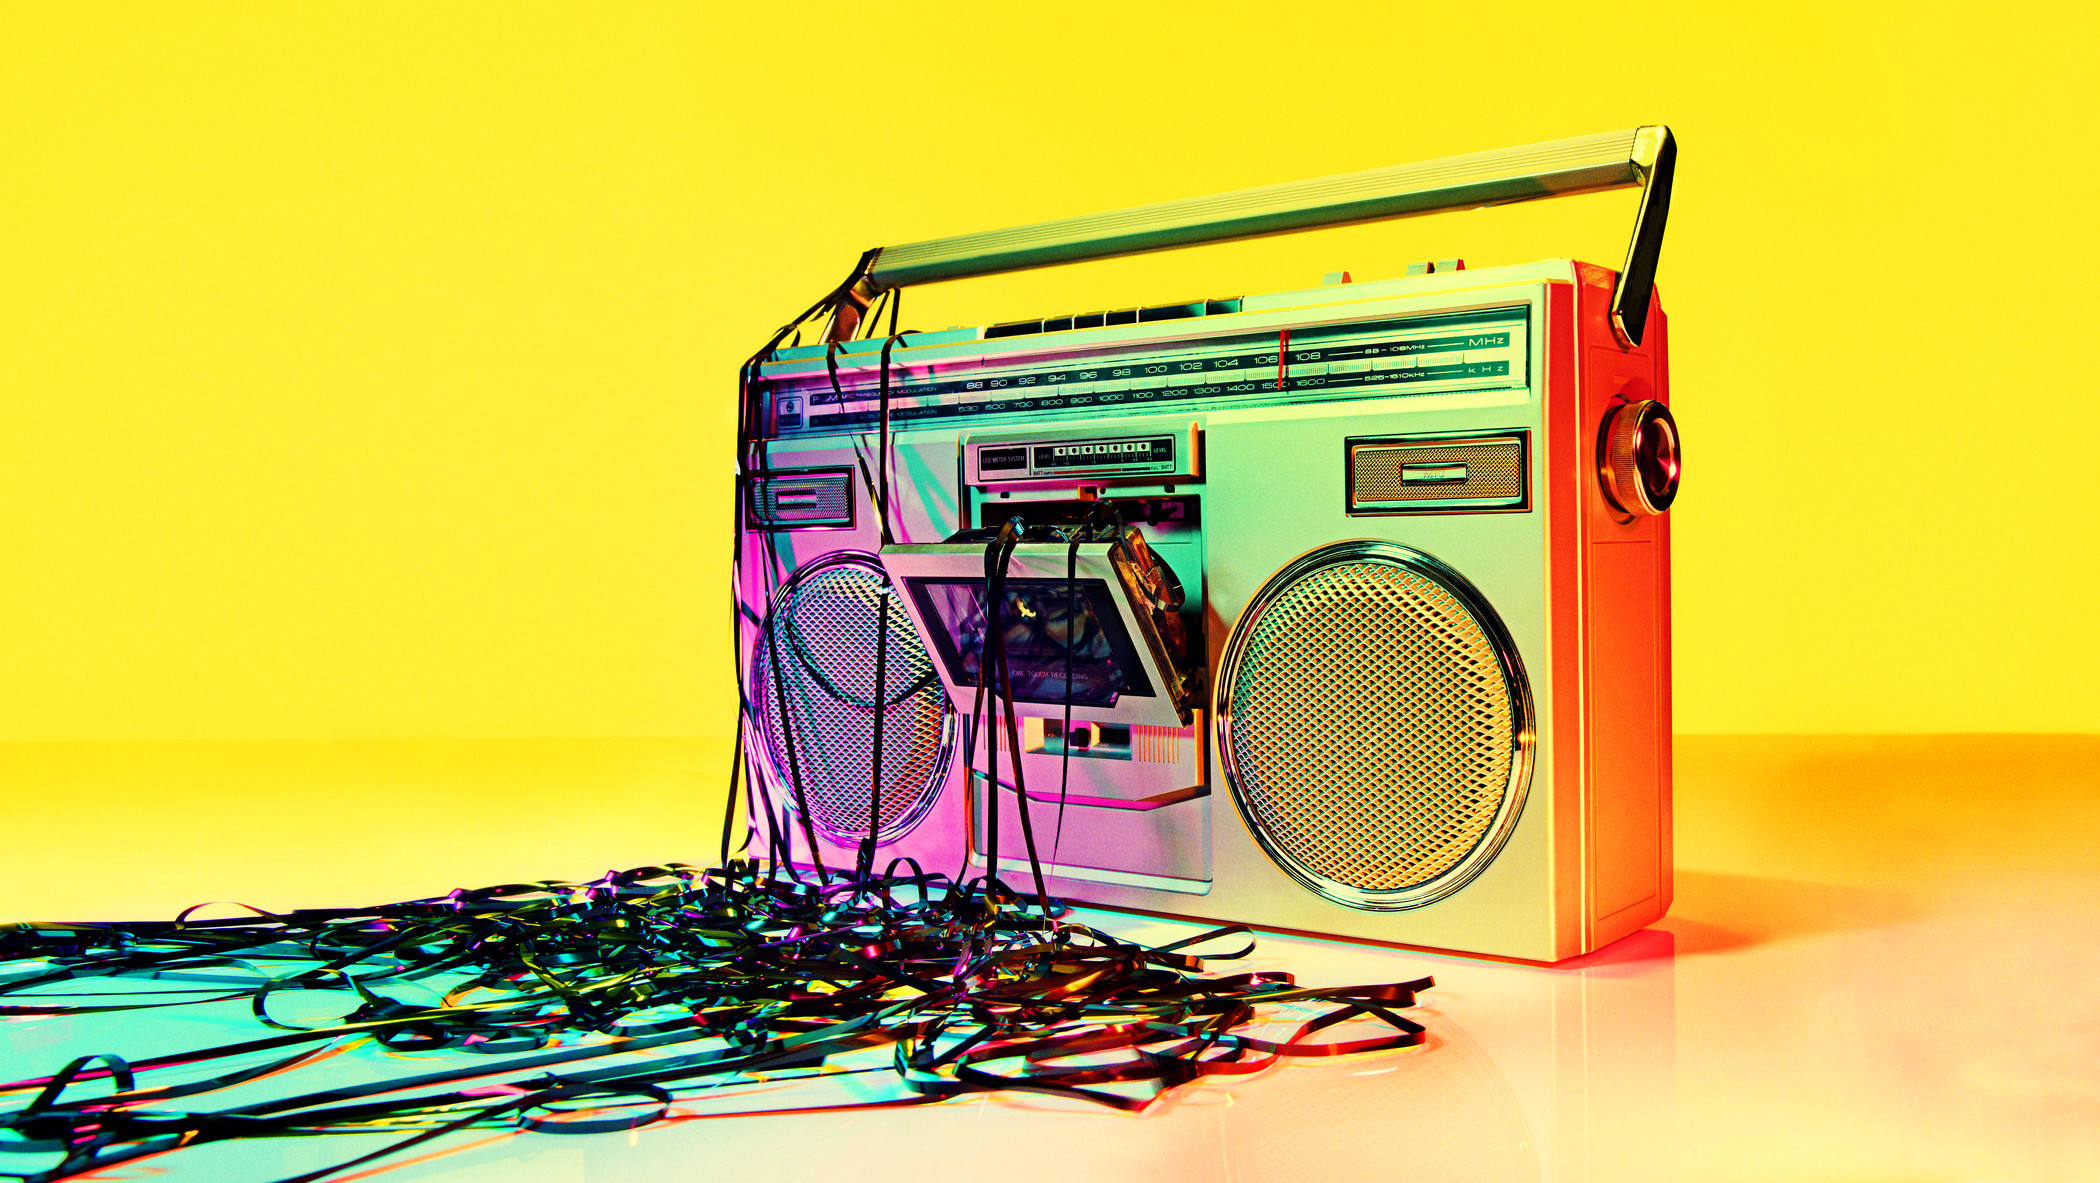 whode-195461-Music Boombox with Tape Cassette Film